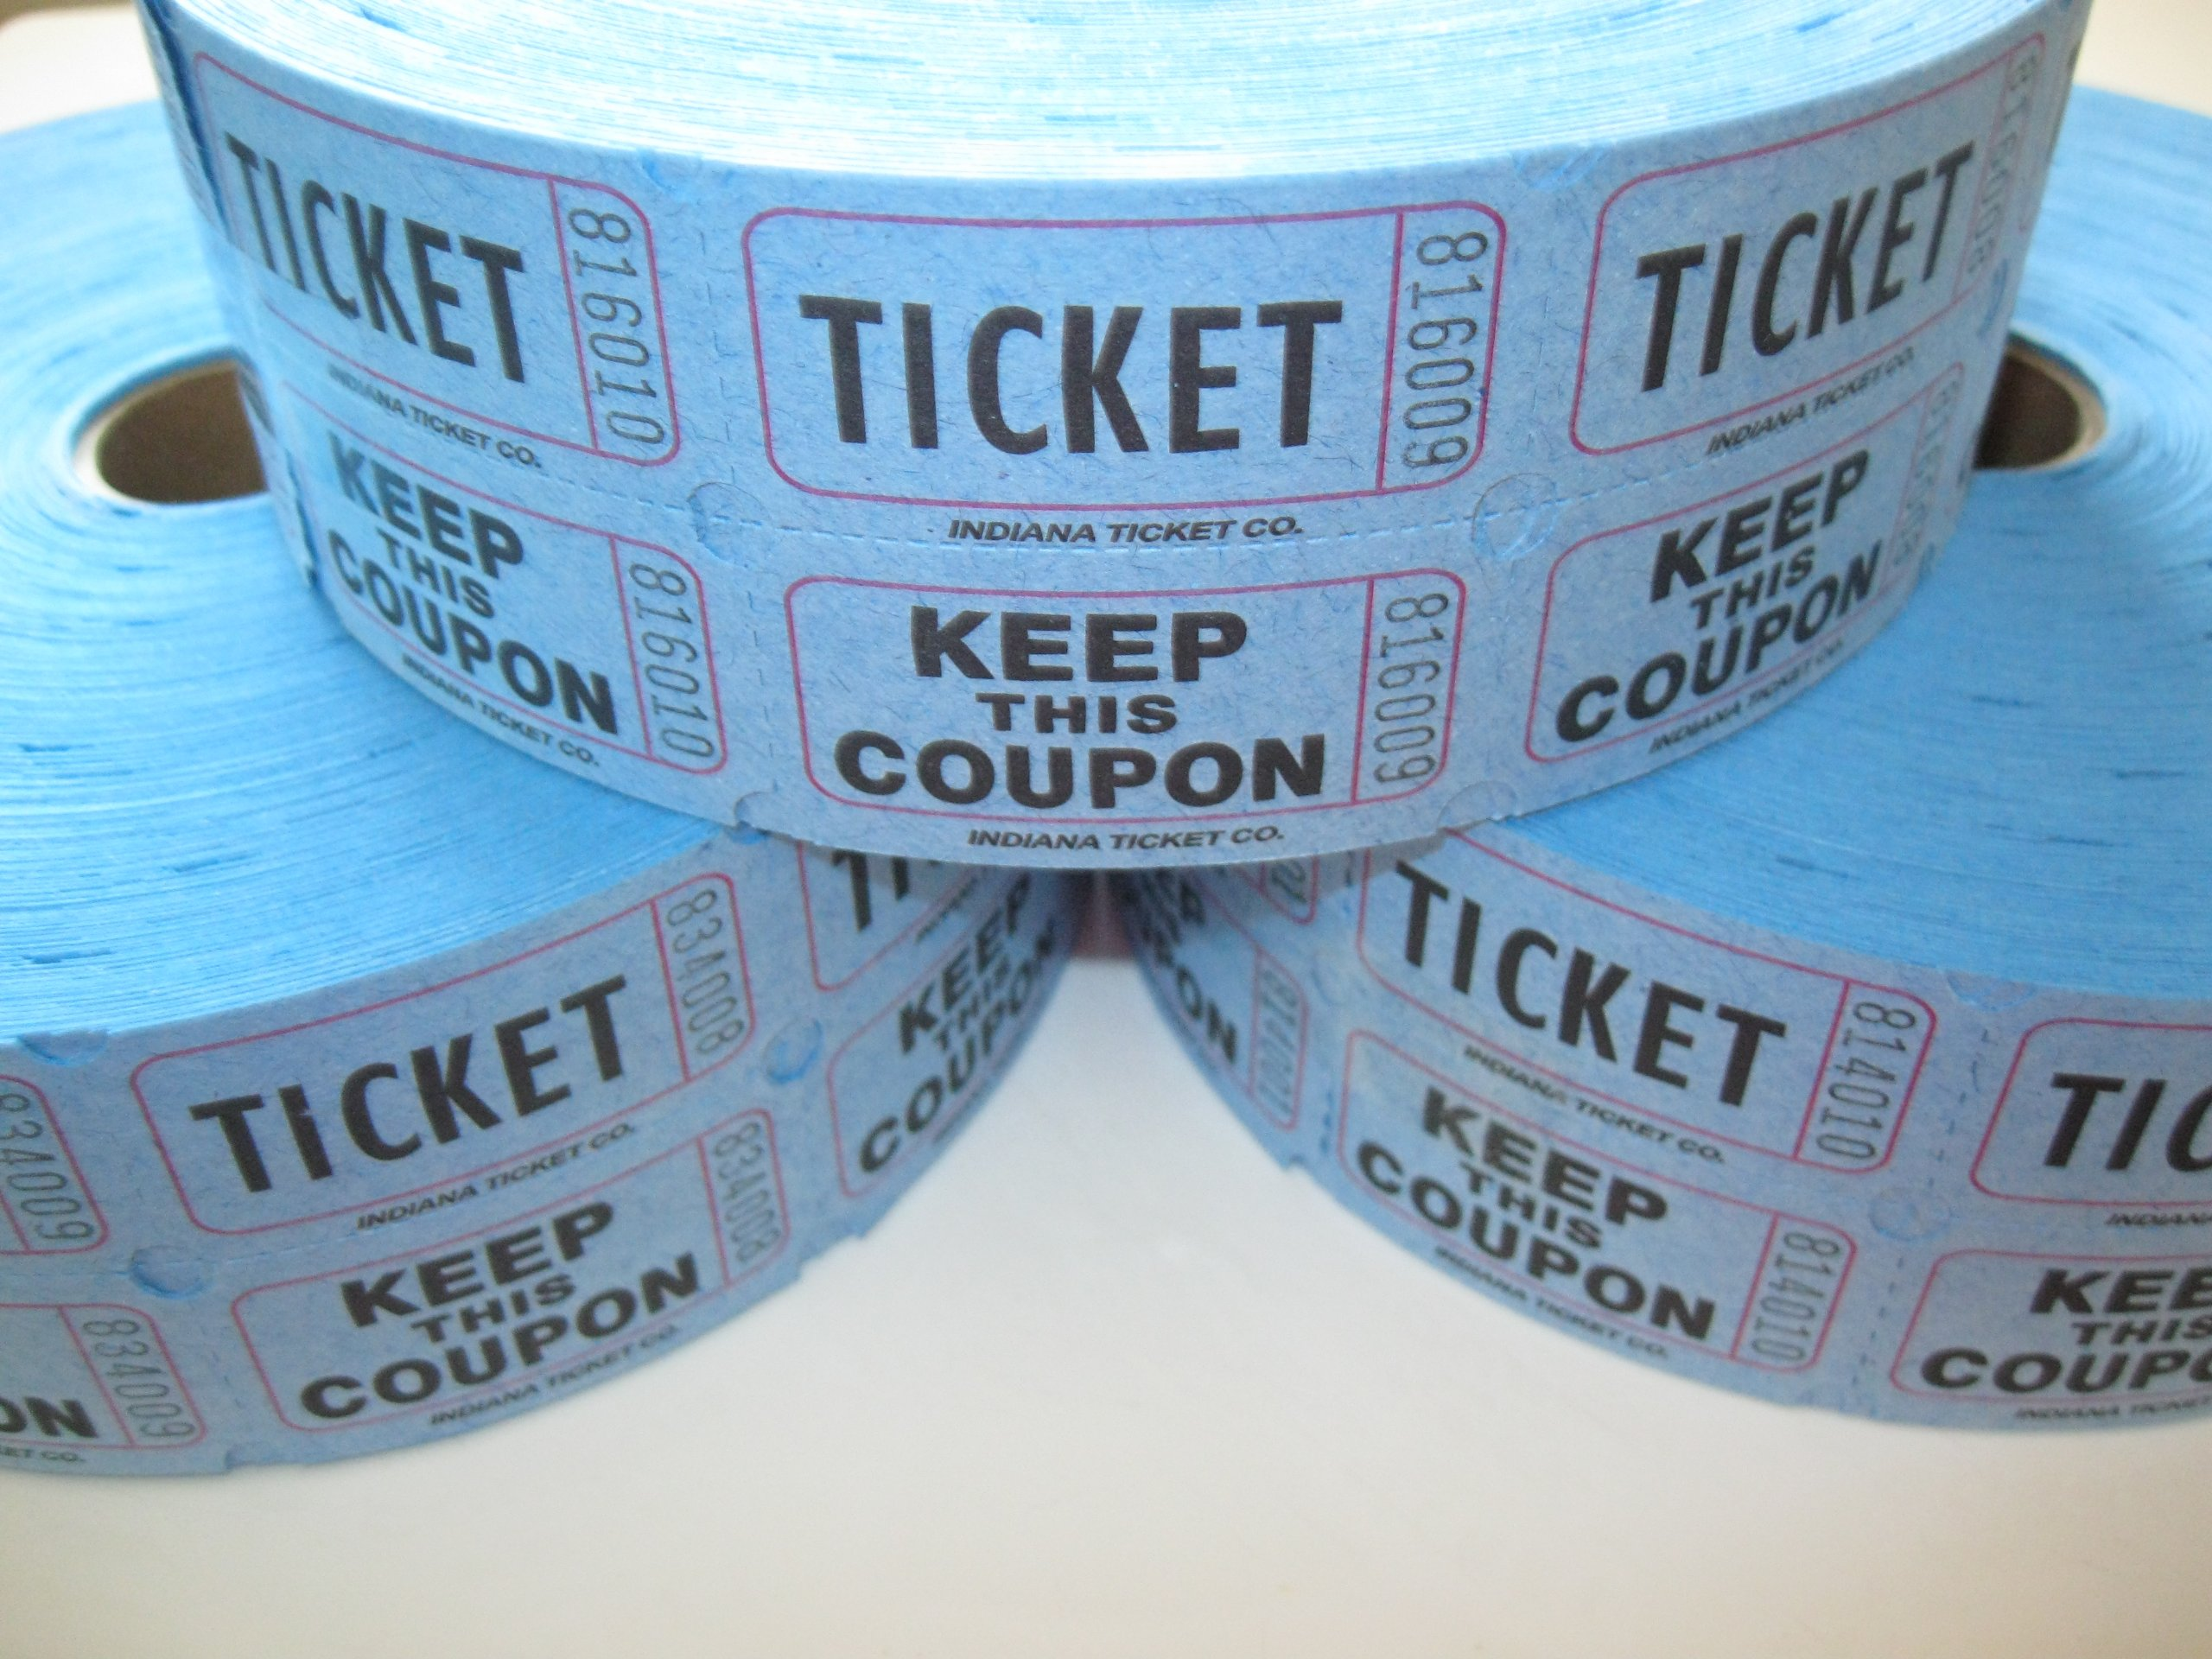 Tags & Tickets - On Sale Now! Save Up To 3%